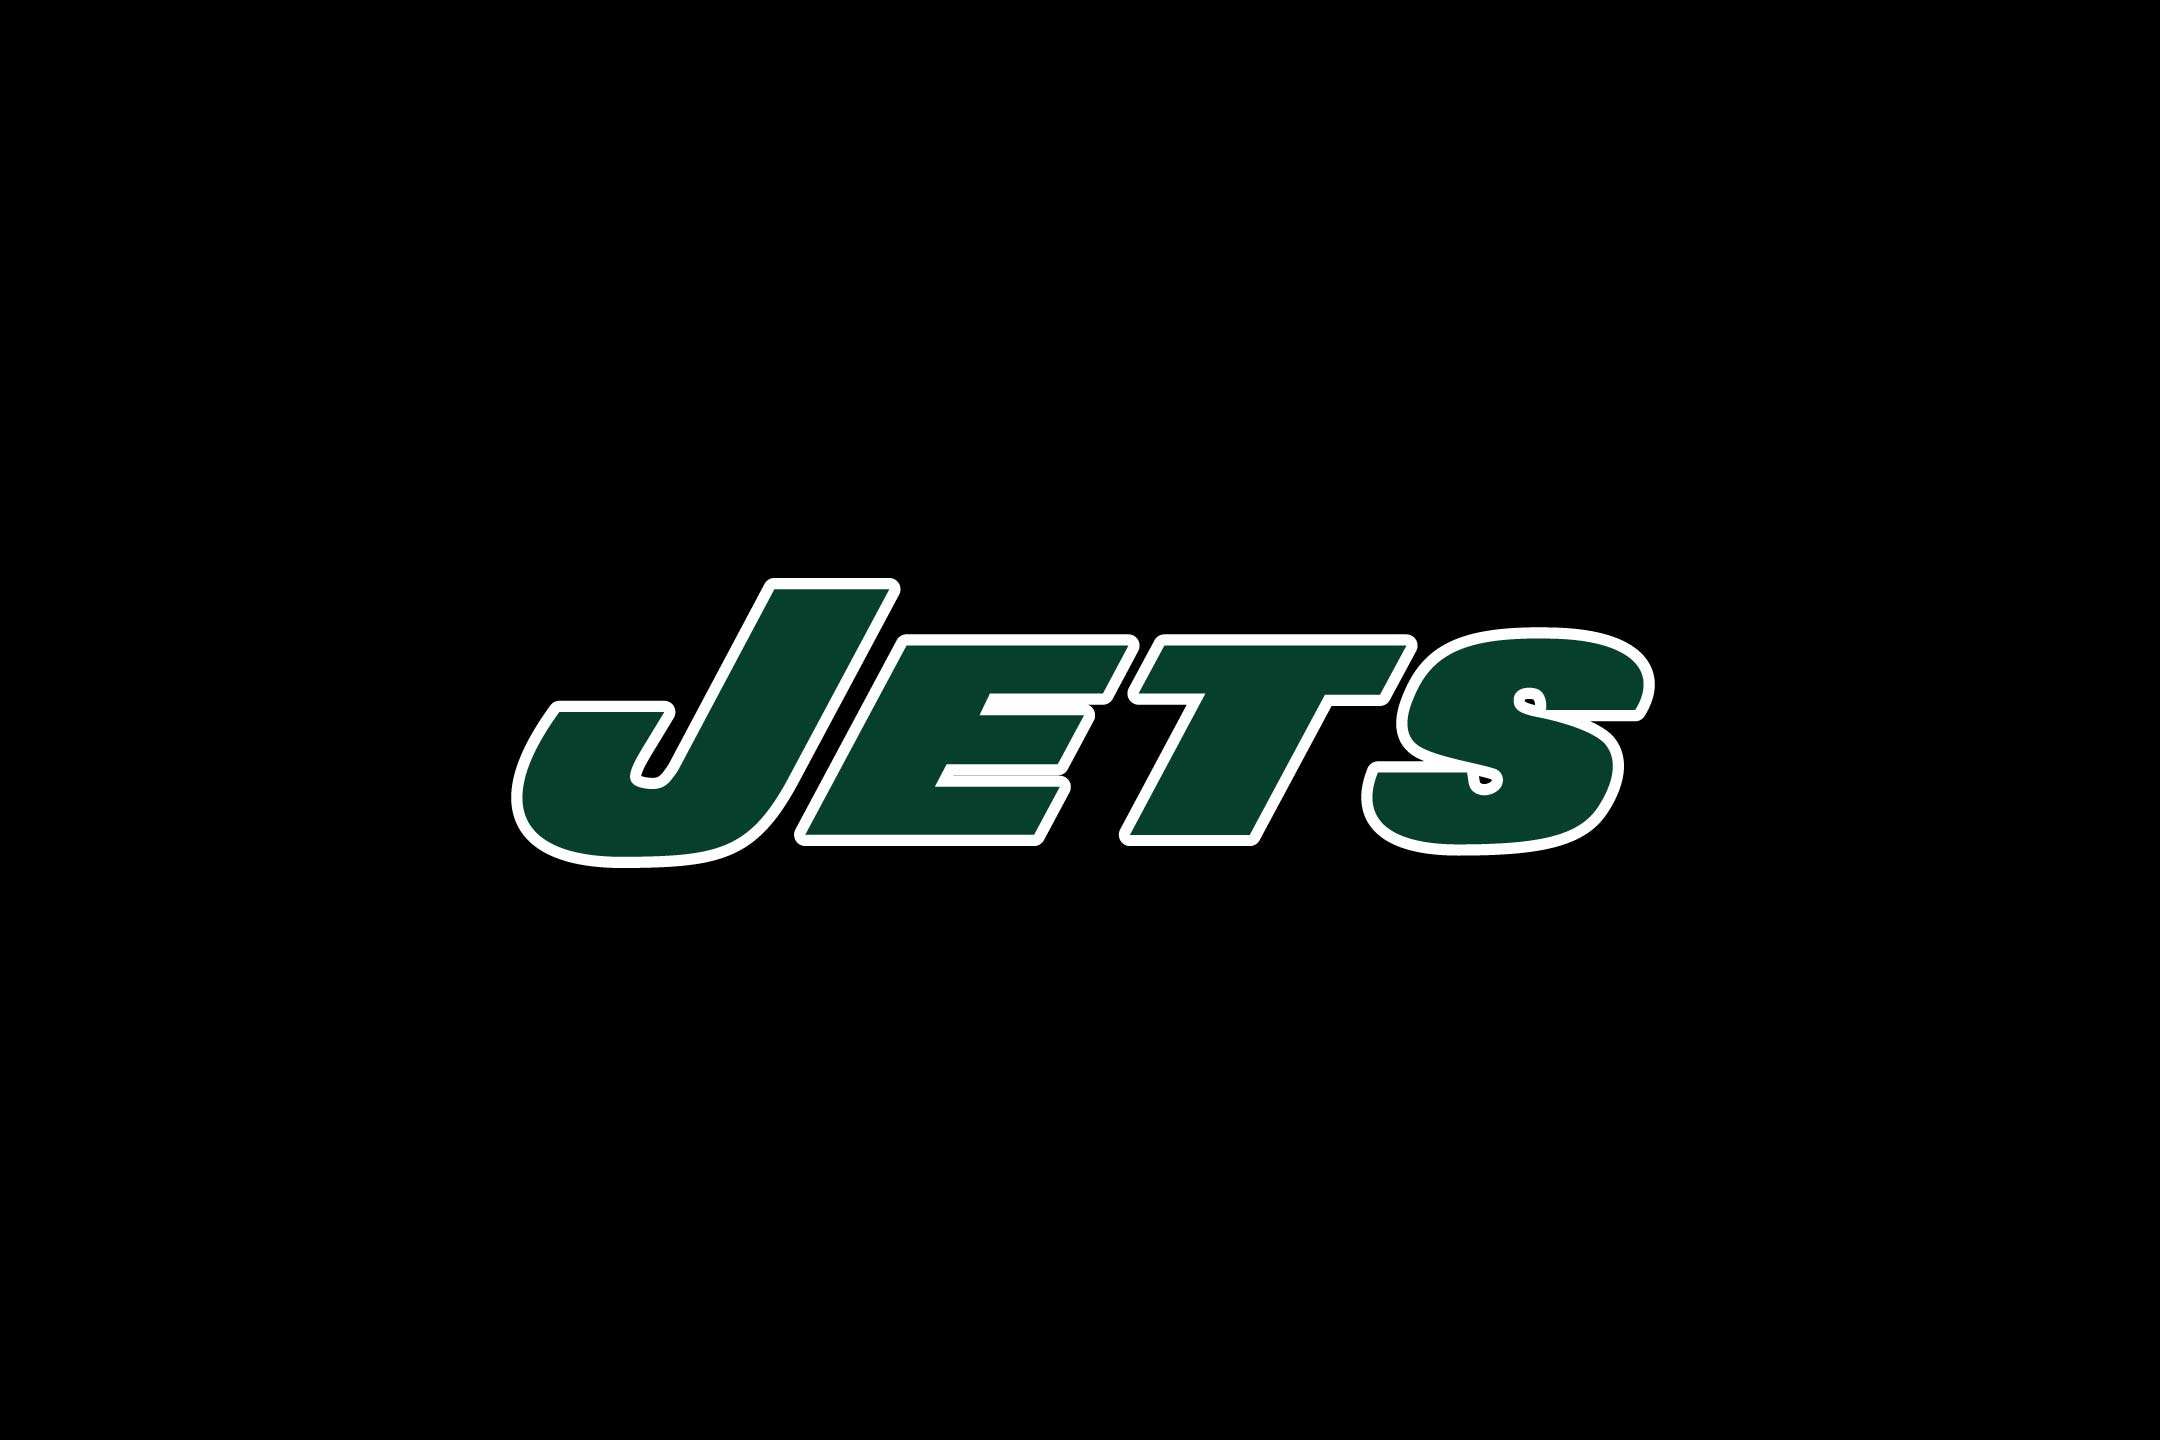 NEW YORK JETS nfl football fw wallpaper 2160x1440 157933 2160x1440